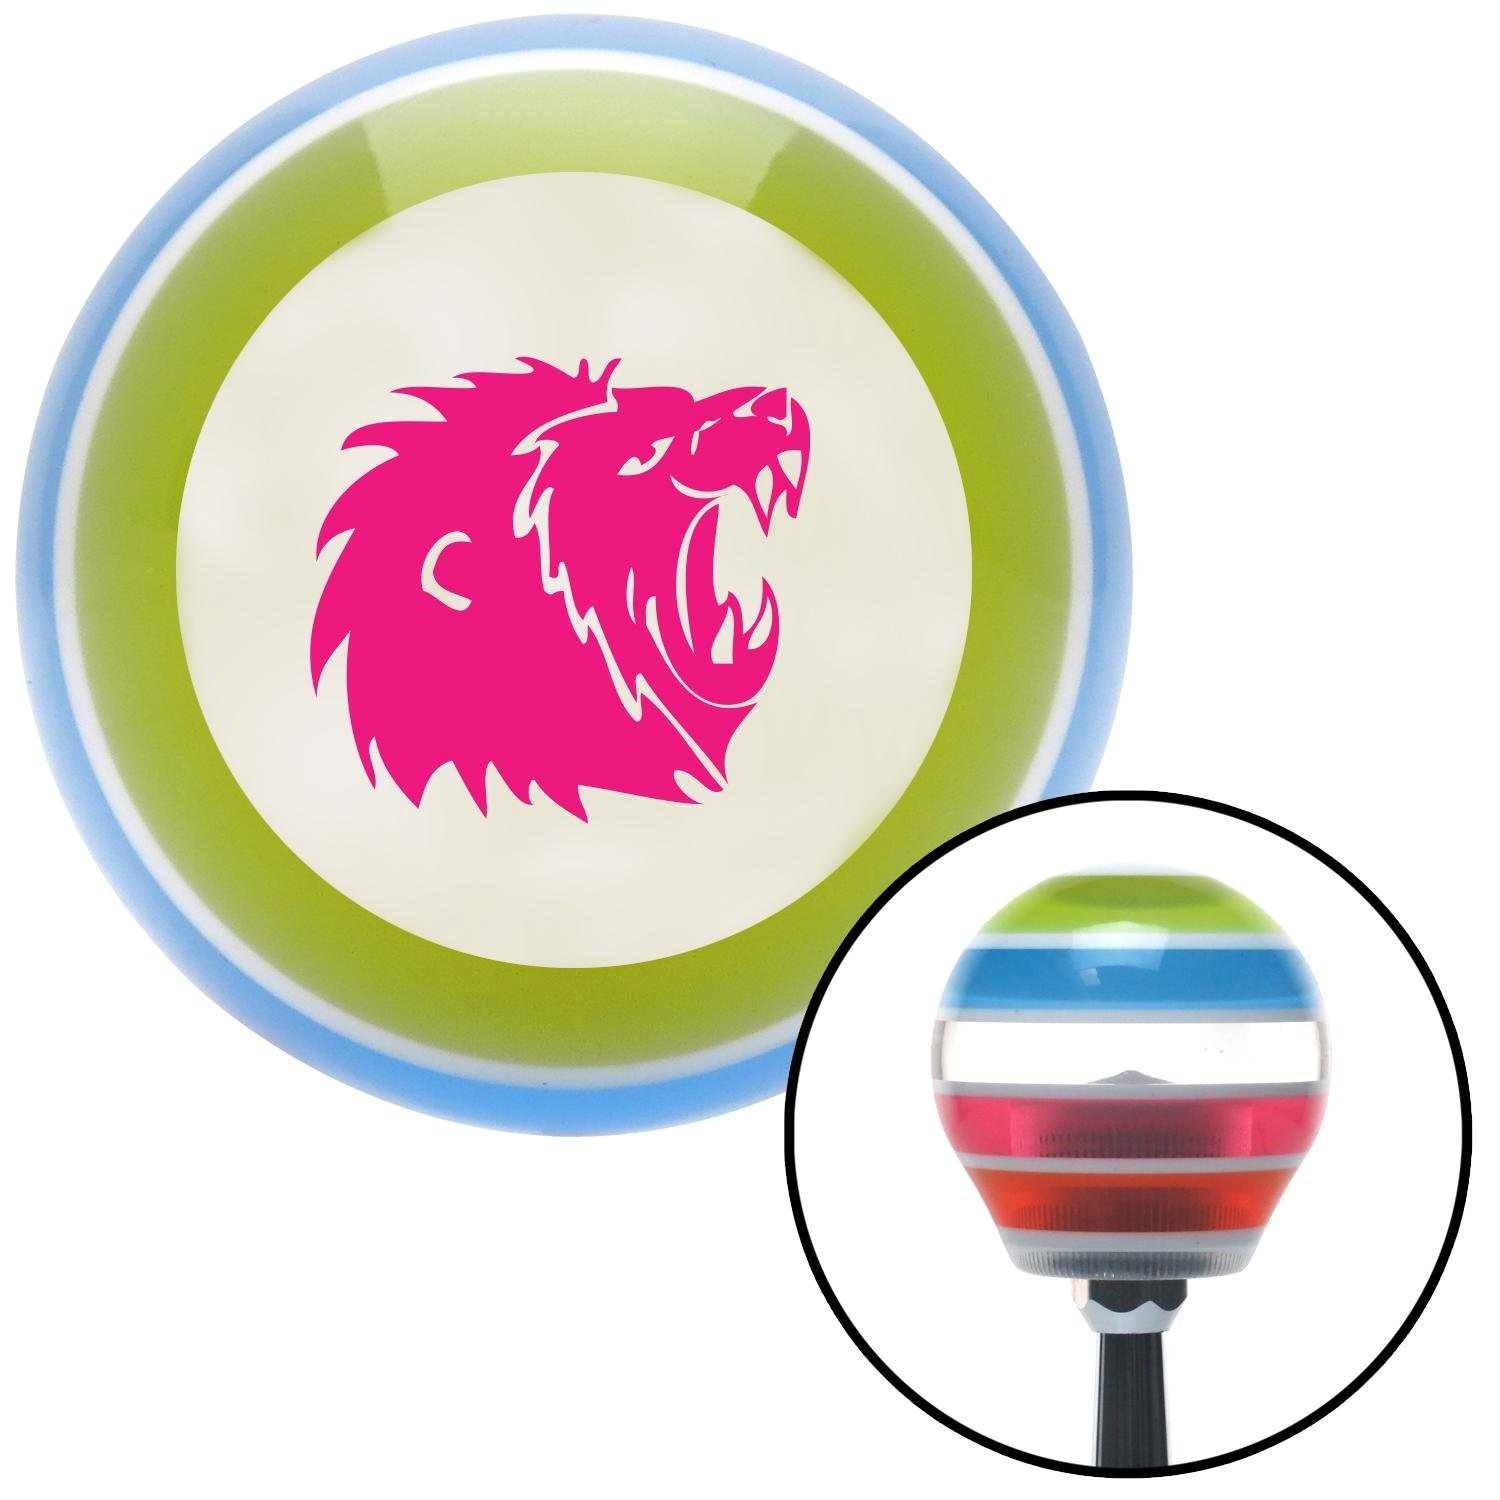 American Shifter 130658 Stripe Shift Knob with M16 x 1.5 Insert Pink Lion